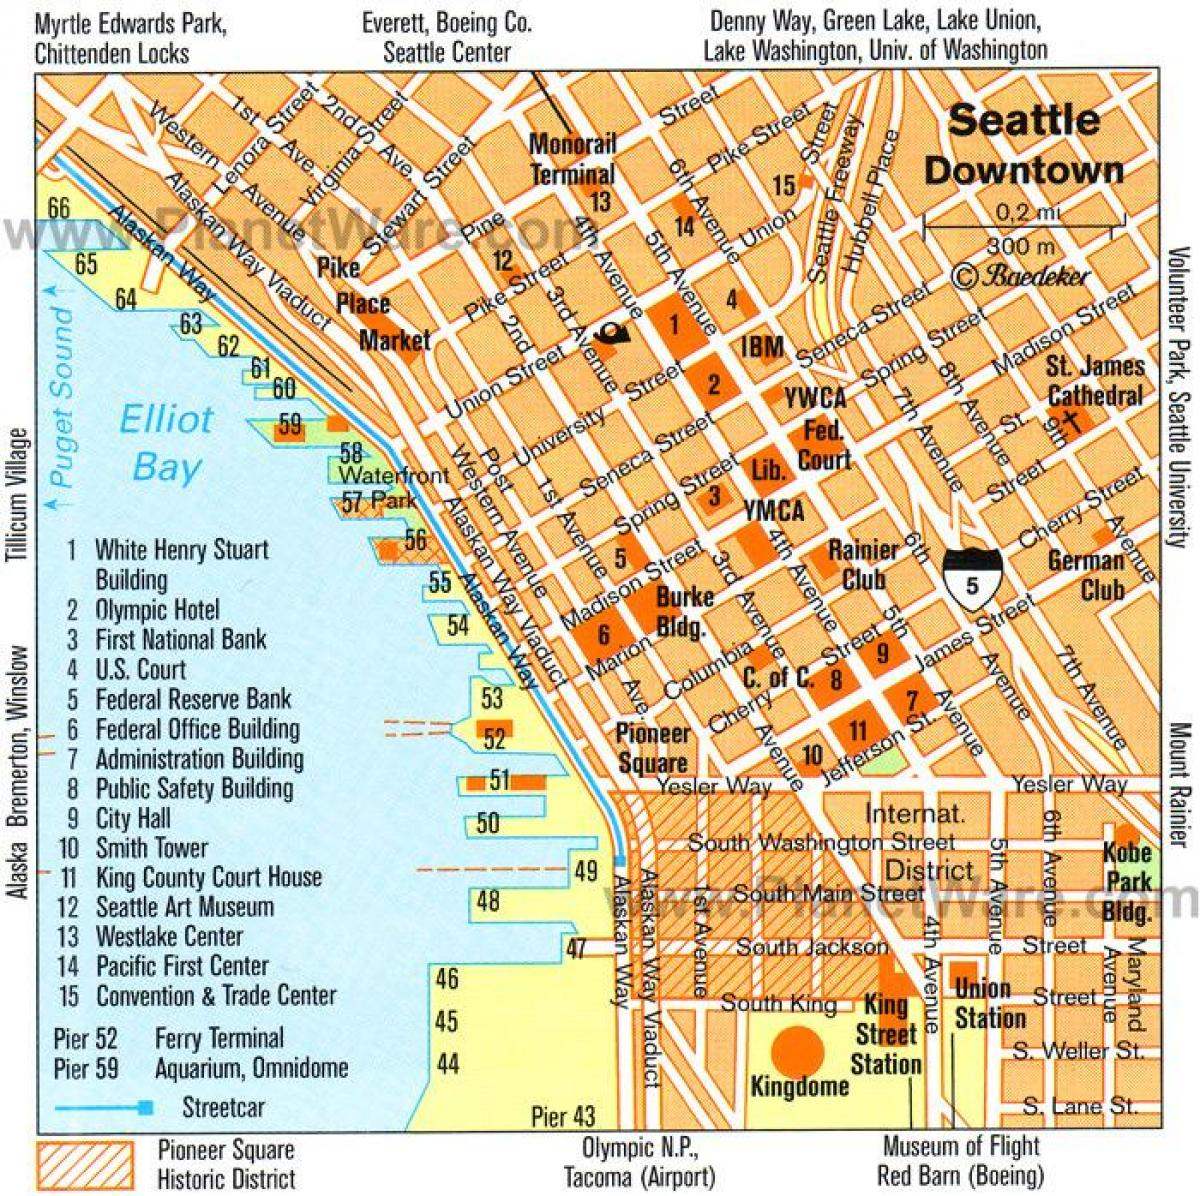 Downtown Seattle Walking Map - Walking Map Of Downtown Seattle - Printable Map Of Downtown Seattle